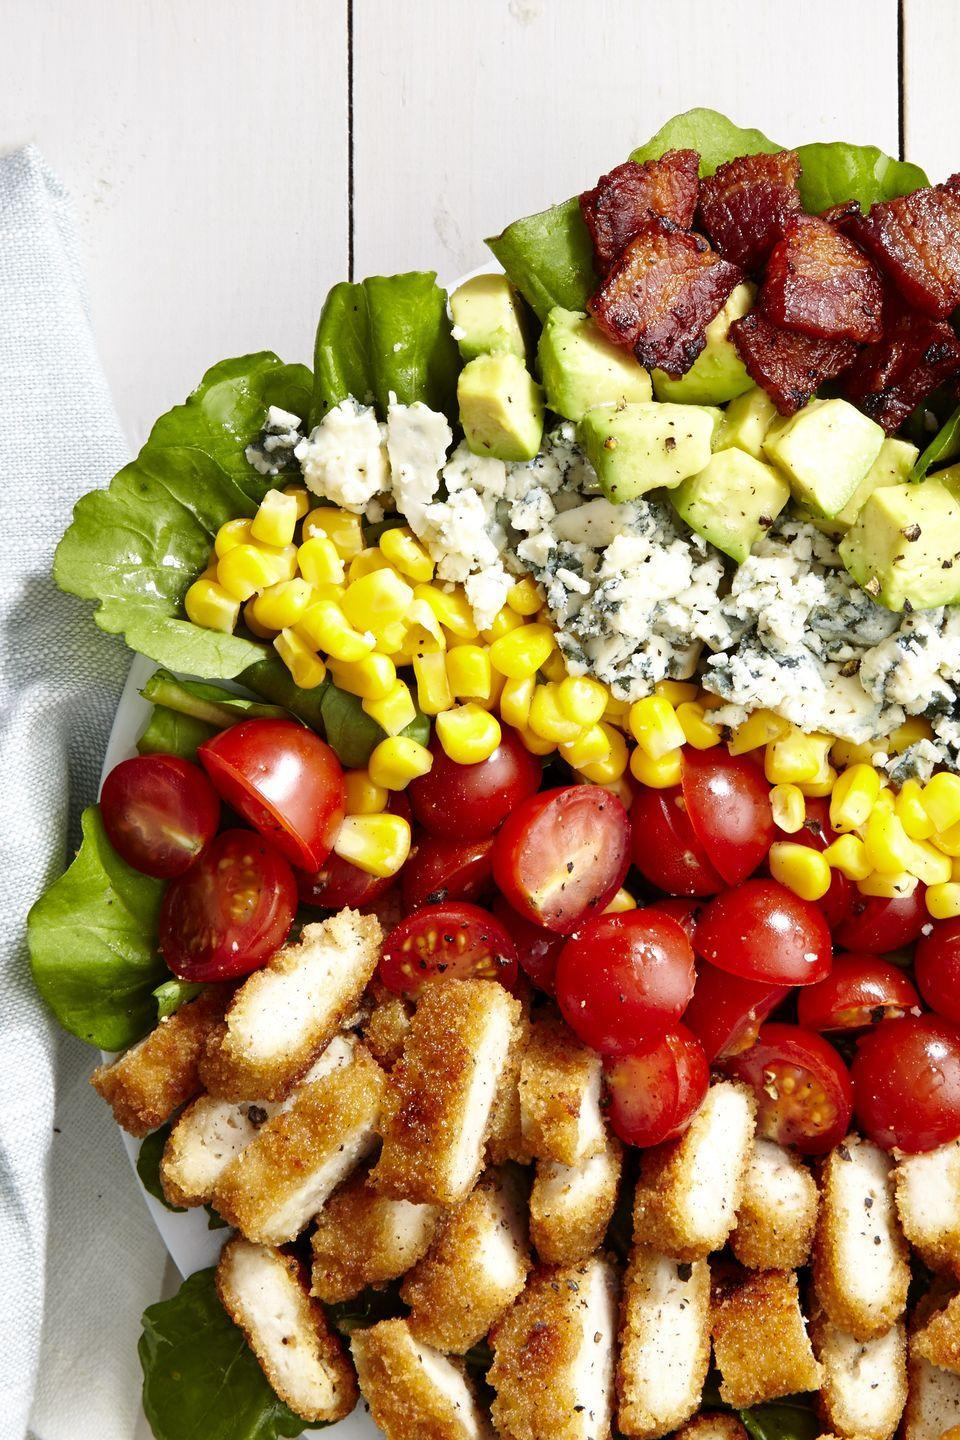 "<p>Up your salad game with this classic Cobb.</p><p>Get the recipe from <a href=""https://www.delish.com/cooking/recipe-ideas/recipes/a46115/breaded-chicken-cobb-salad-recipe/"" rel=""nofollow noopener"" target=""_blank"" data-ylk=""slk:Delish"" class=""link rapid-noclick-resp"">Delish</a>.</p>"